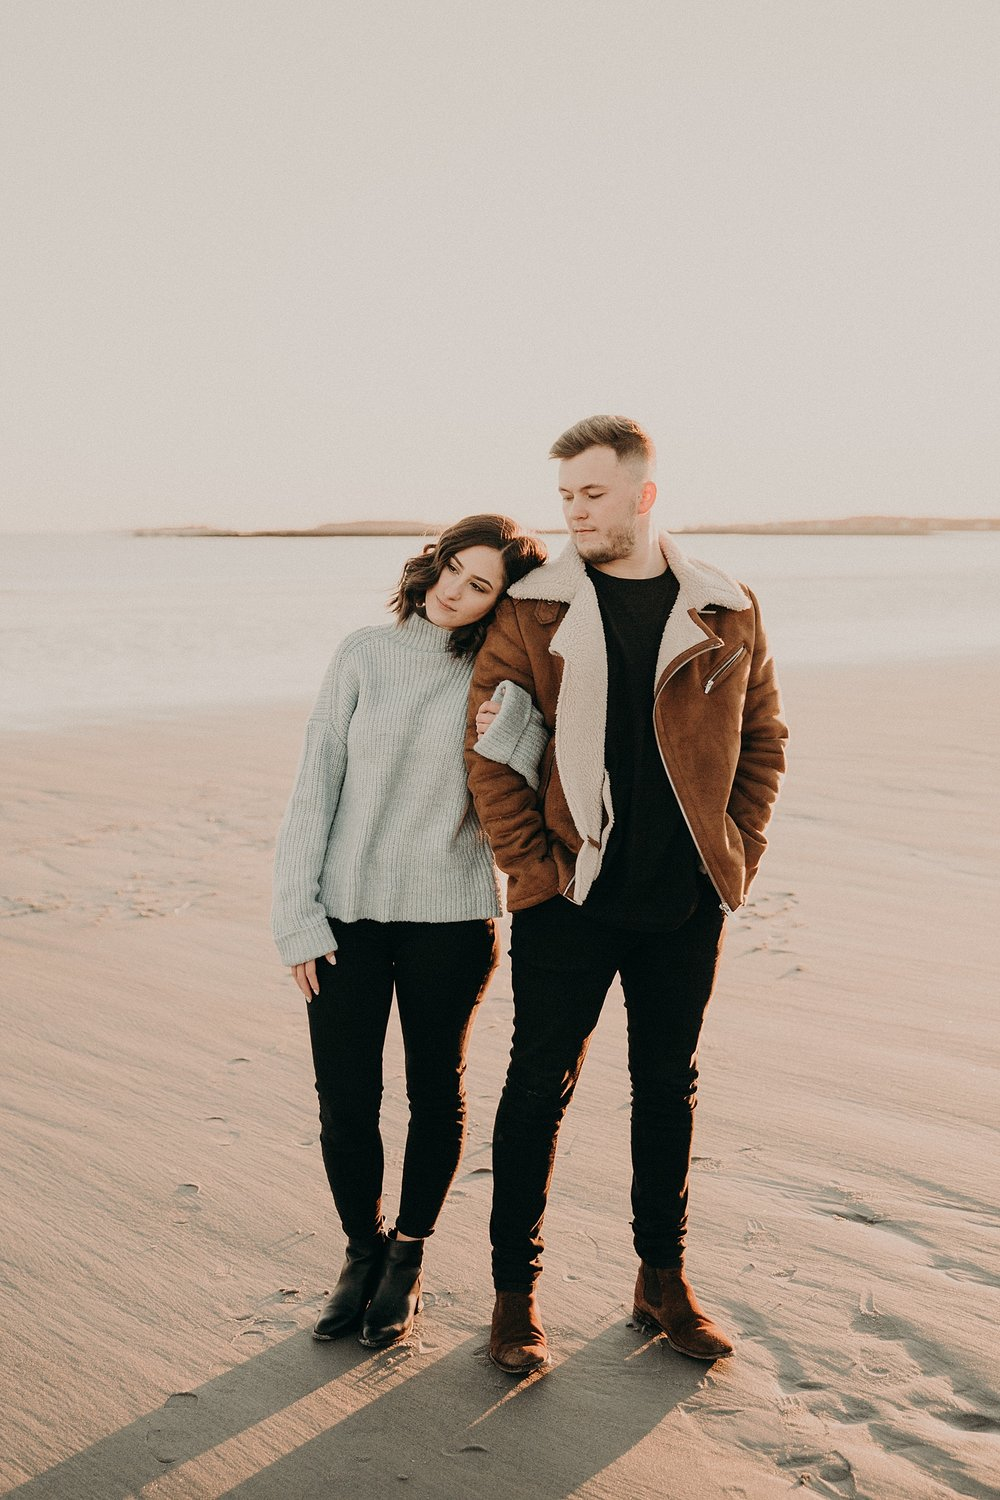 Josh_Lizzie_Goose_Rocks_Beach_Engagement_Session_011.jpeg